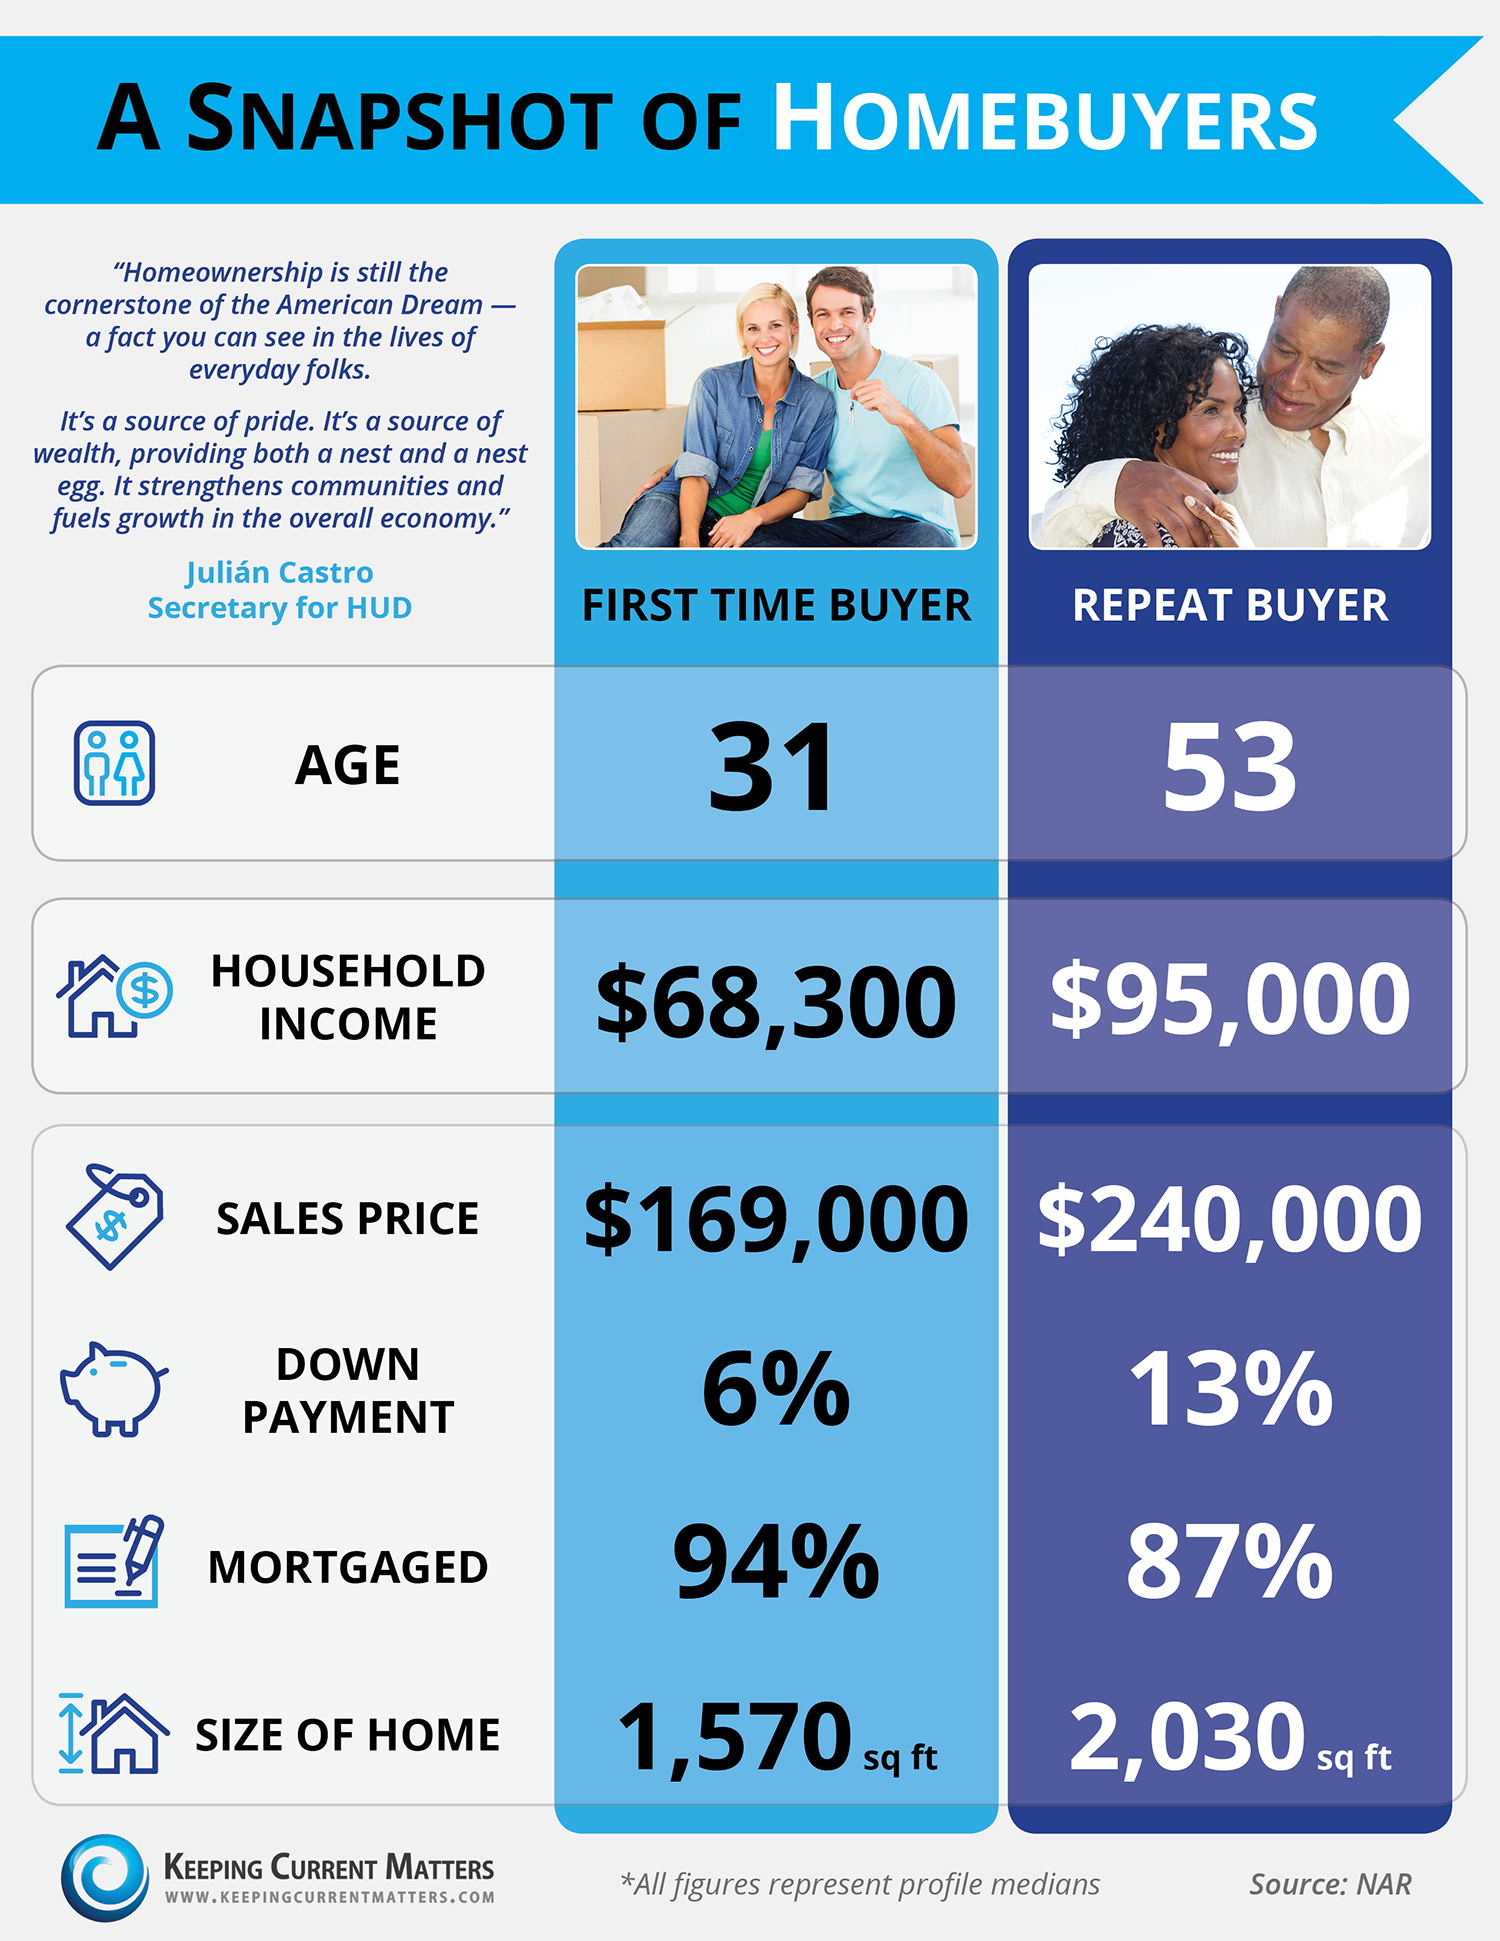 A-Snapshot-of-Homebuyers.jpg (1500×1941)